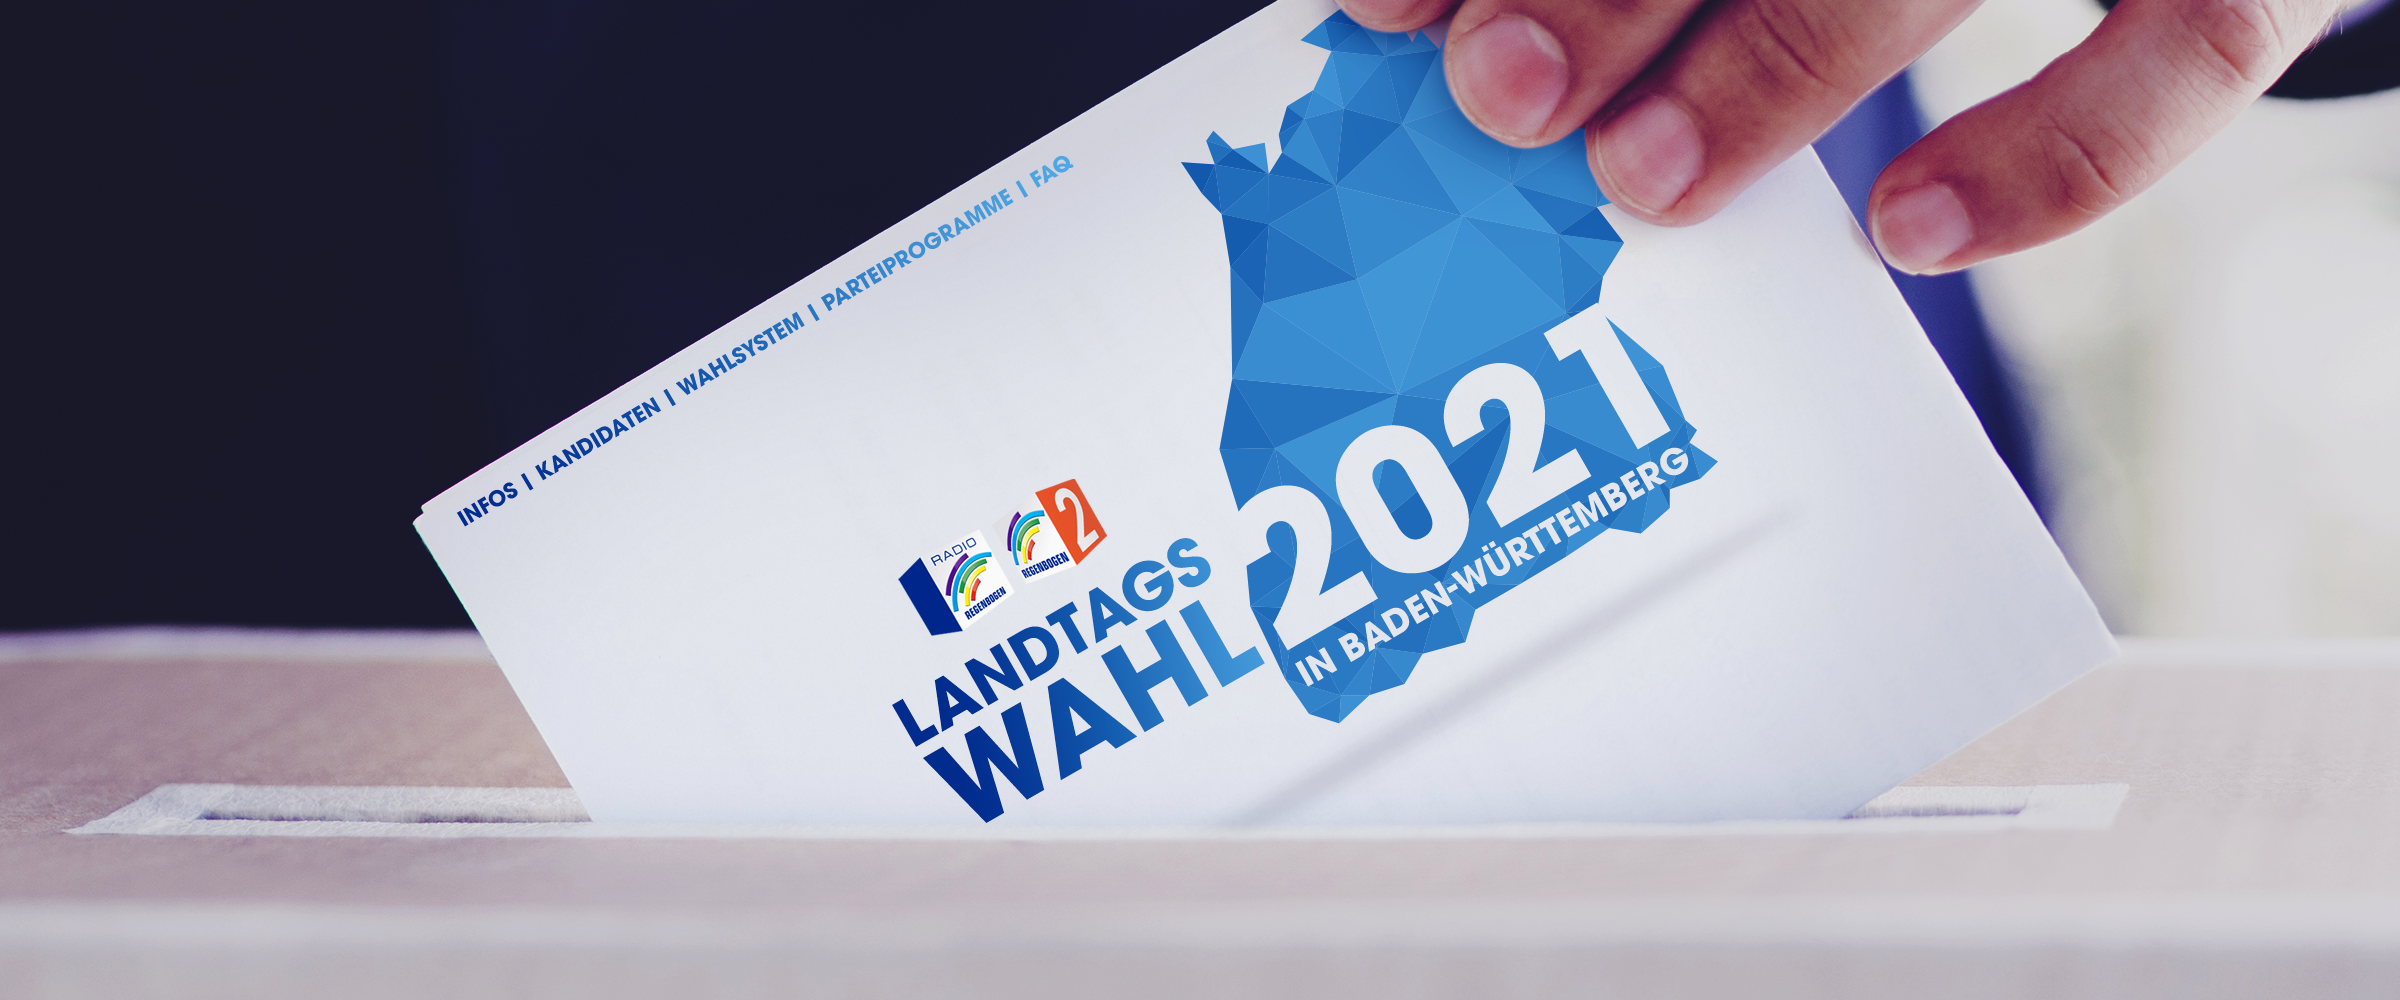 Wahl2021-BaWuepng.png